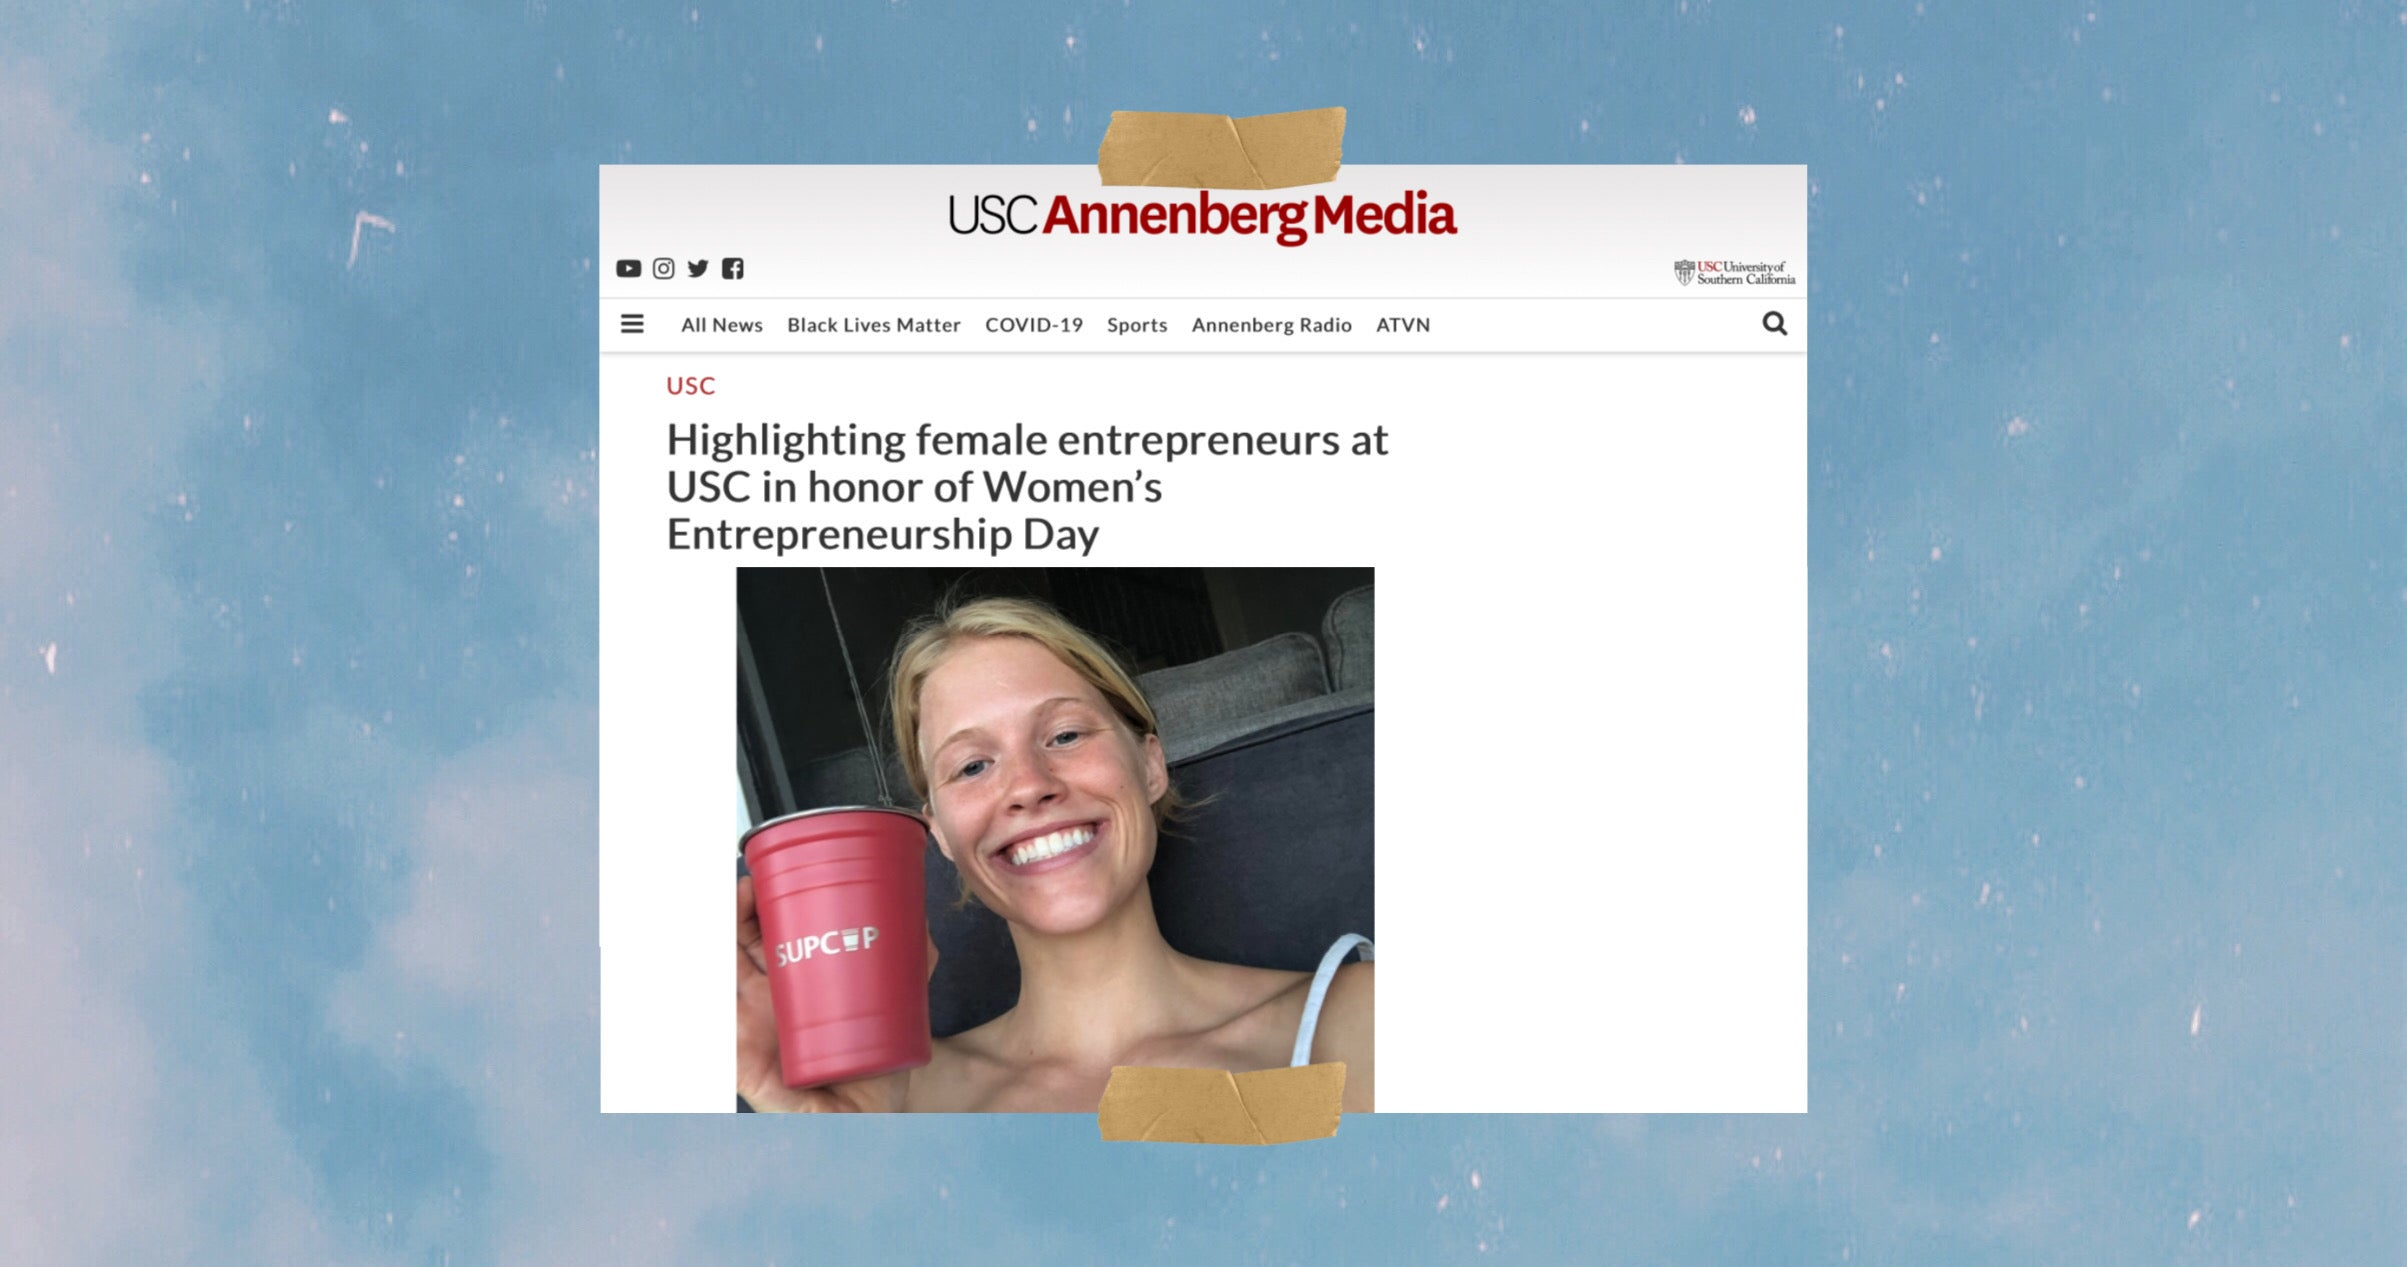 USC Annenberg Daphne Armstrong Female Sustainable Entreprenuer